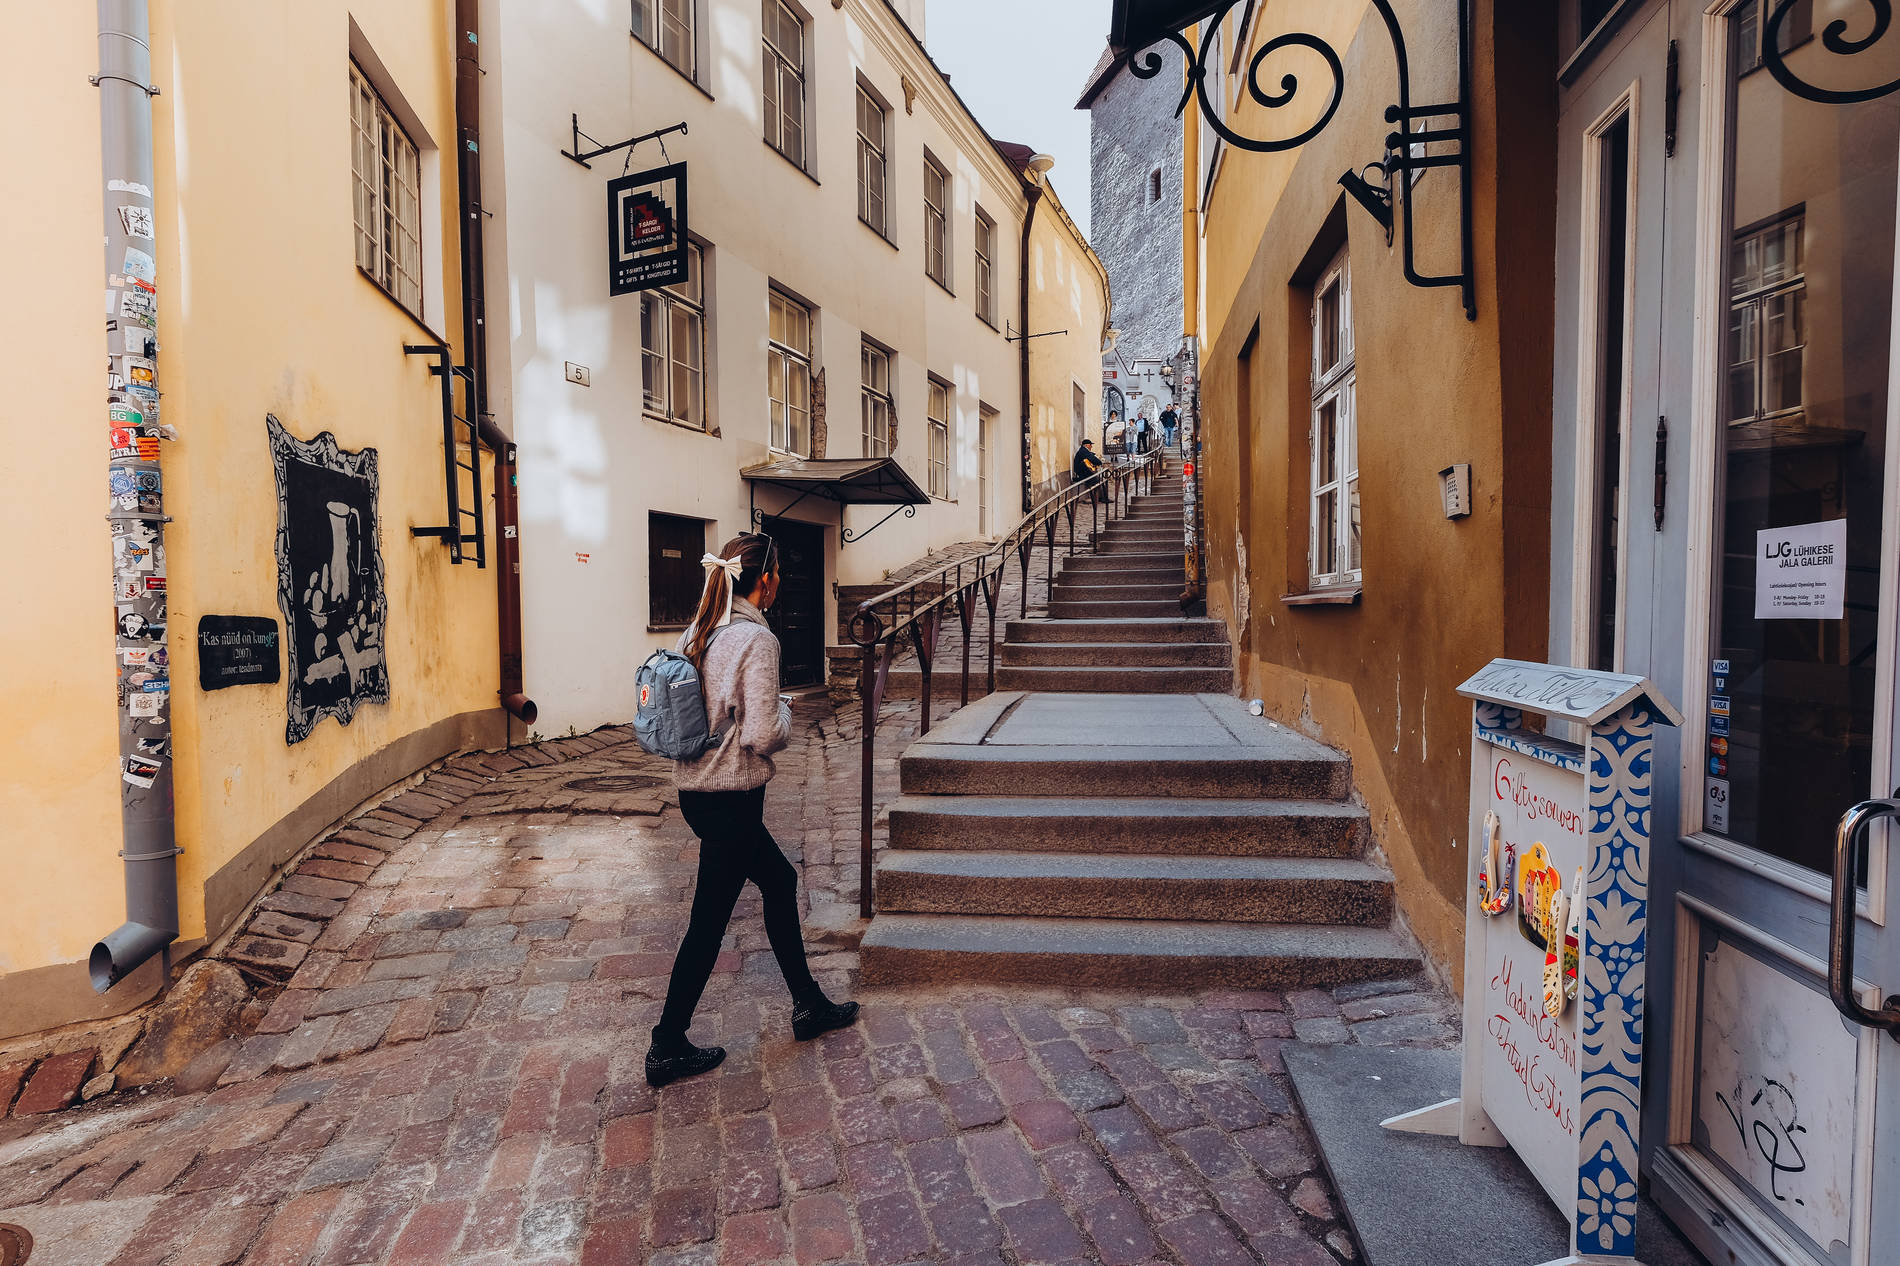 A woman on a romantic street in the medieval Old Town of Tallinn, Estonia